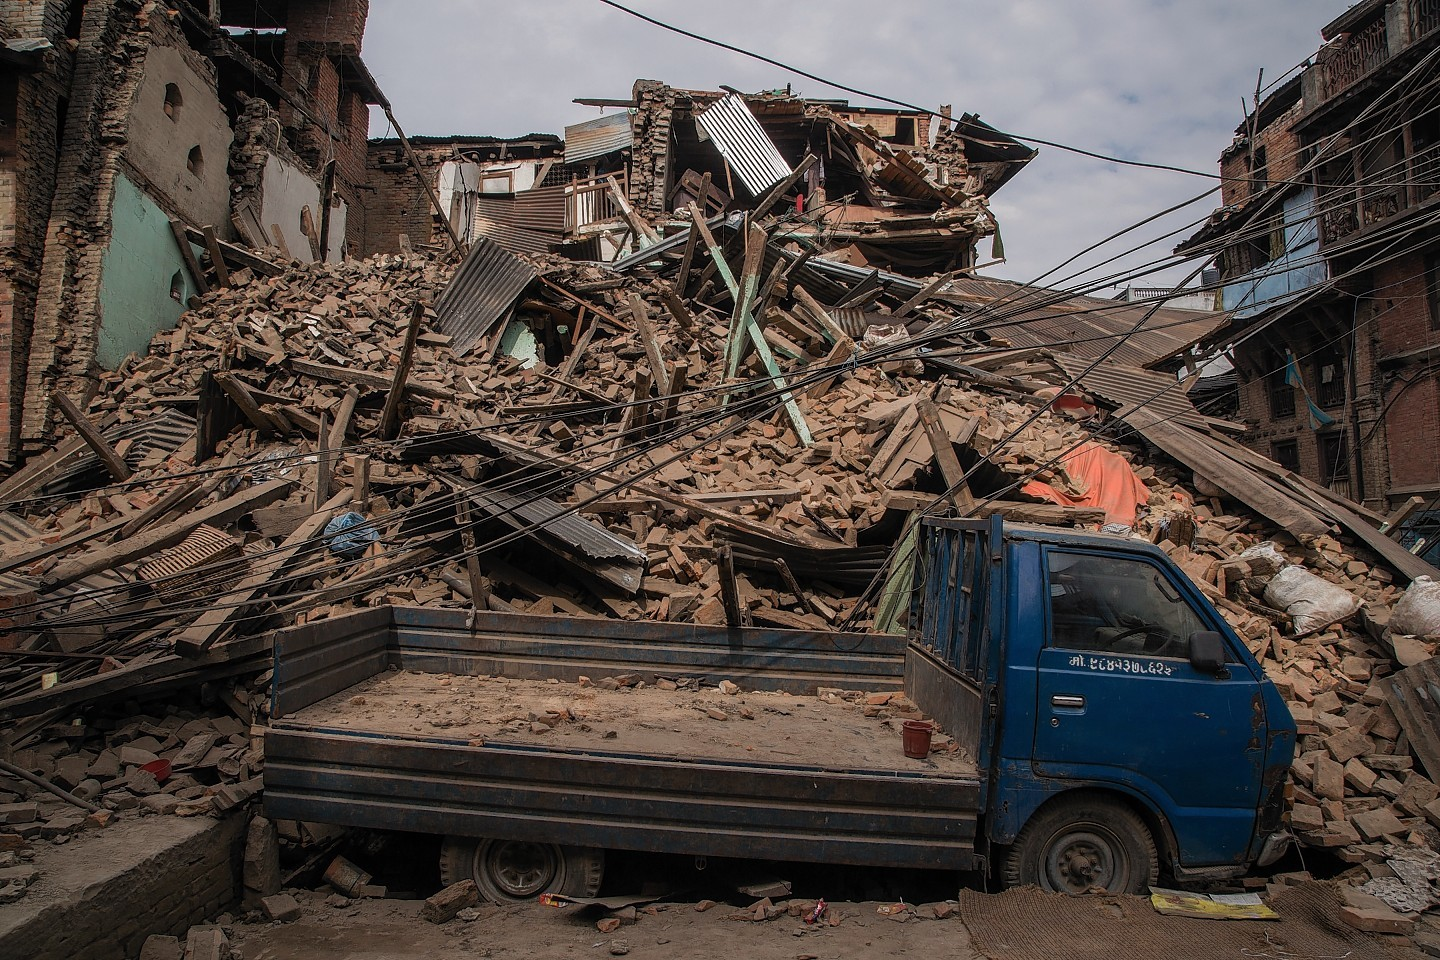 The Scottish Government has donated £250,000 towards the relief effort in Nepal.